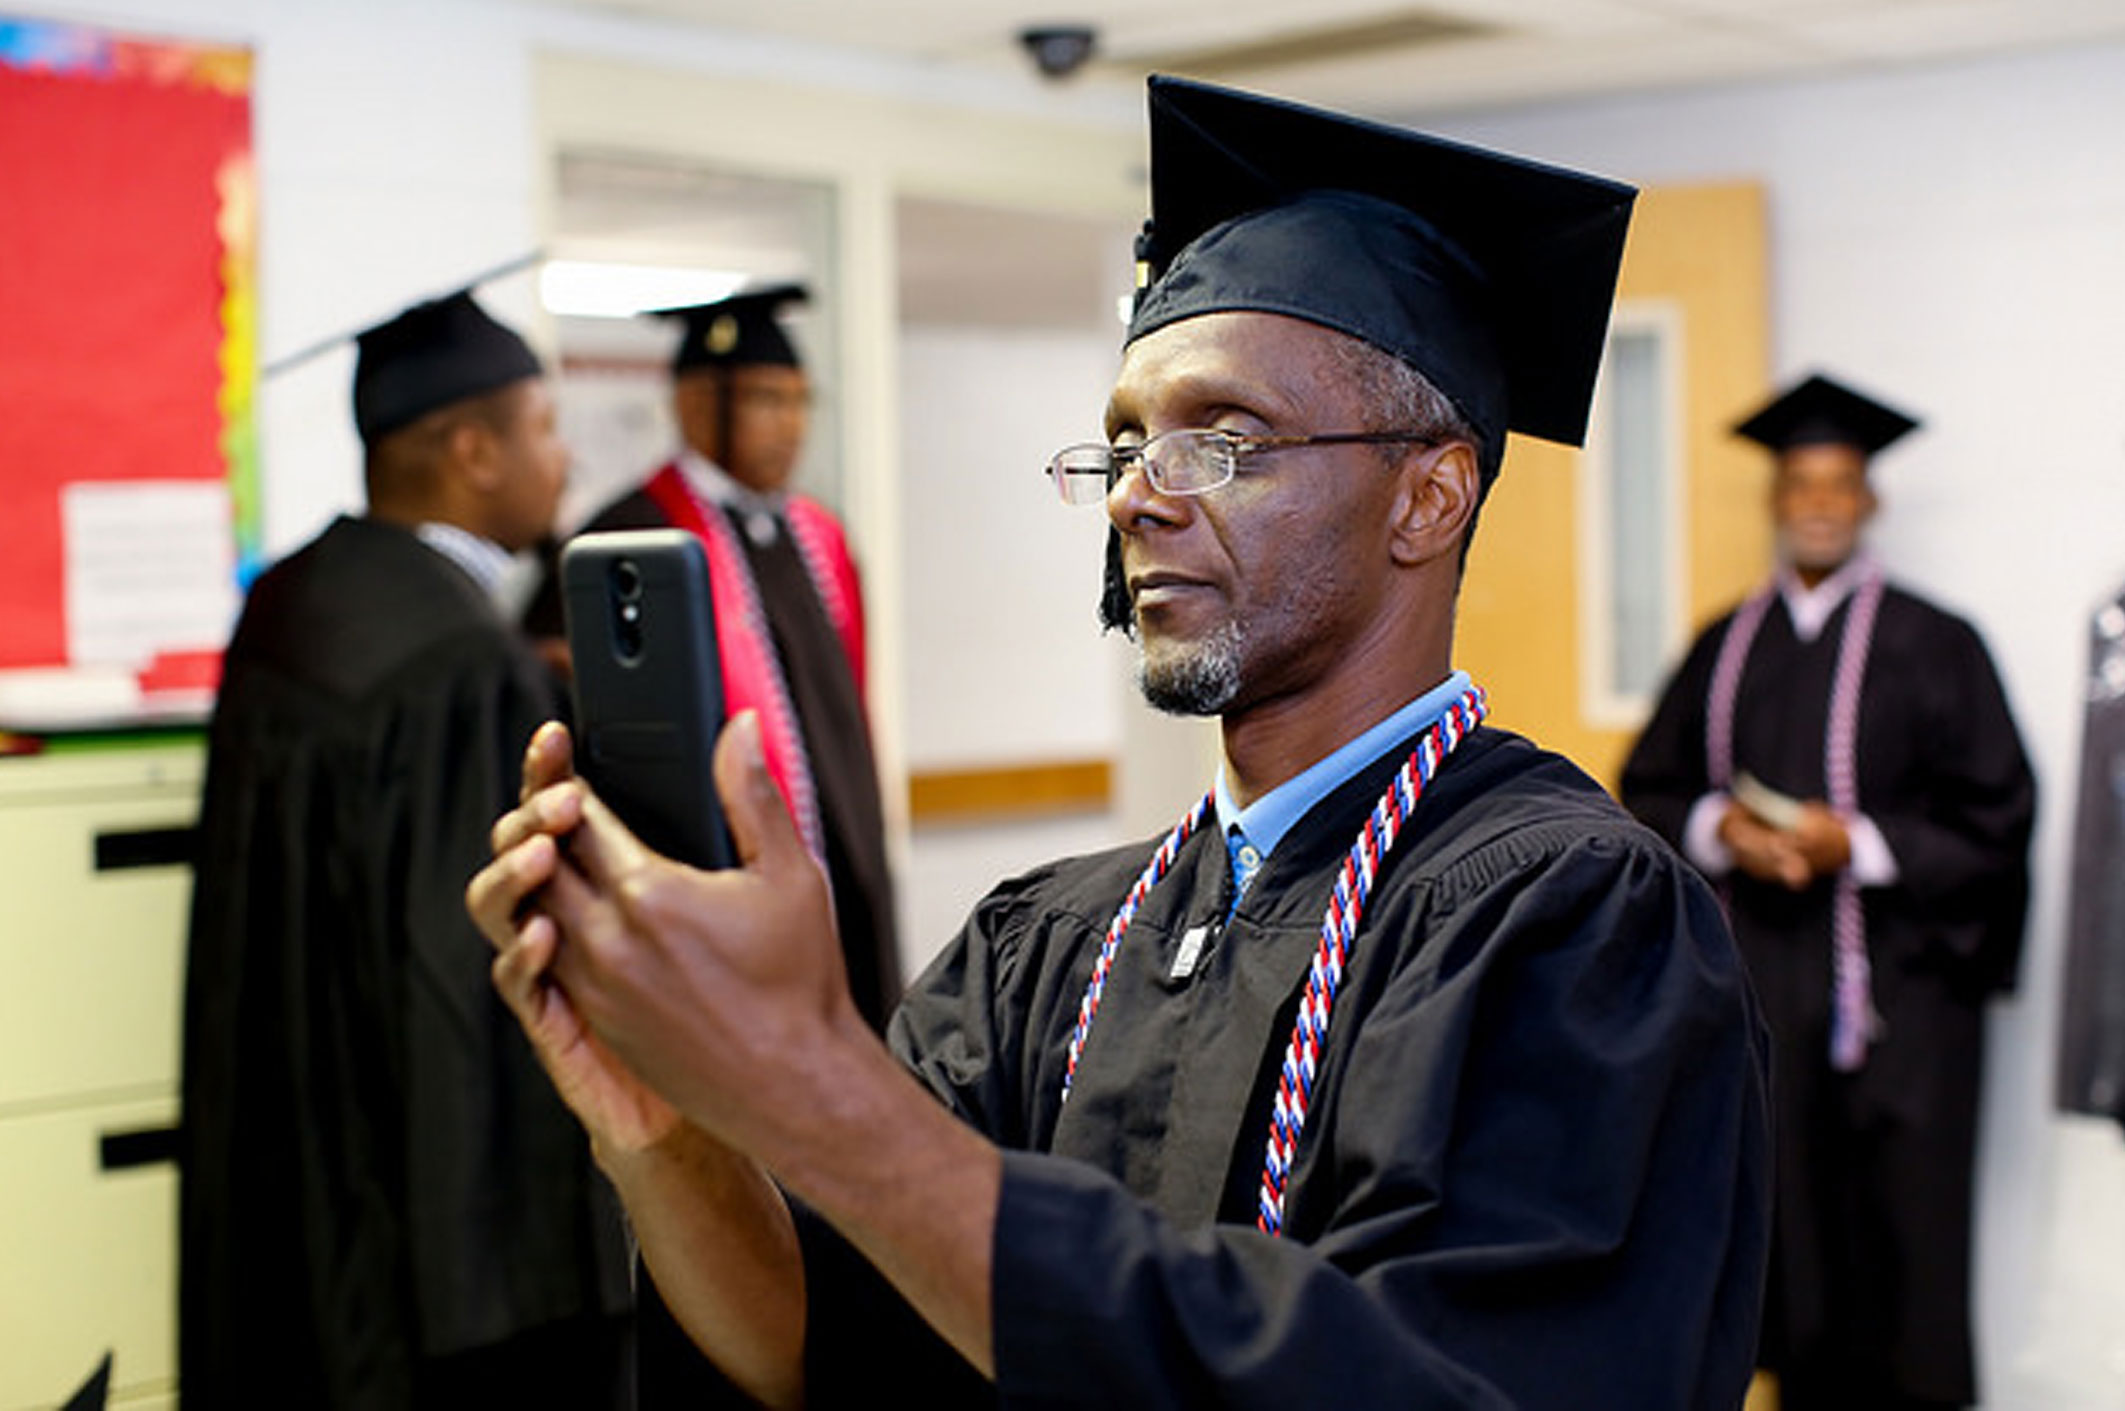 A graduate takes a selfie before the ceremony